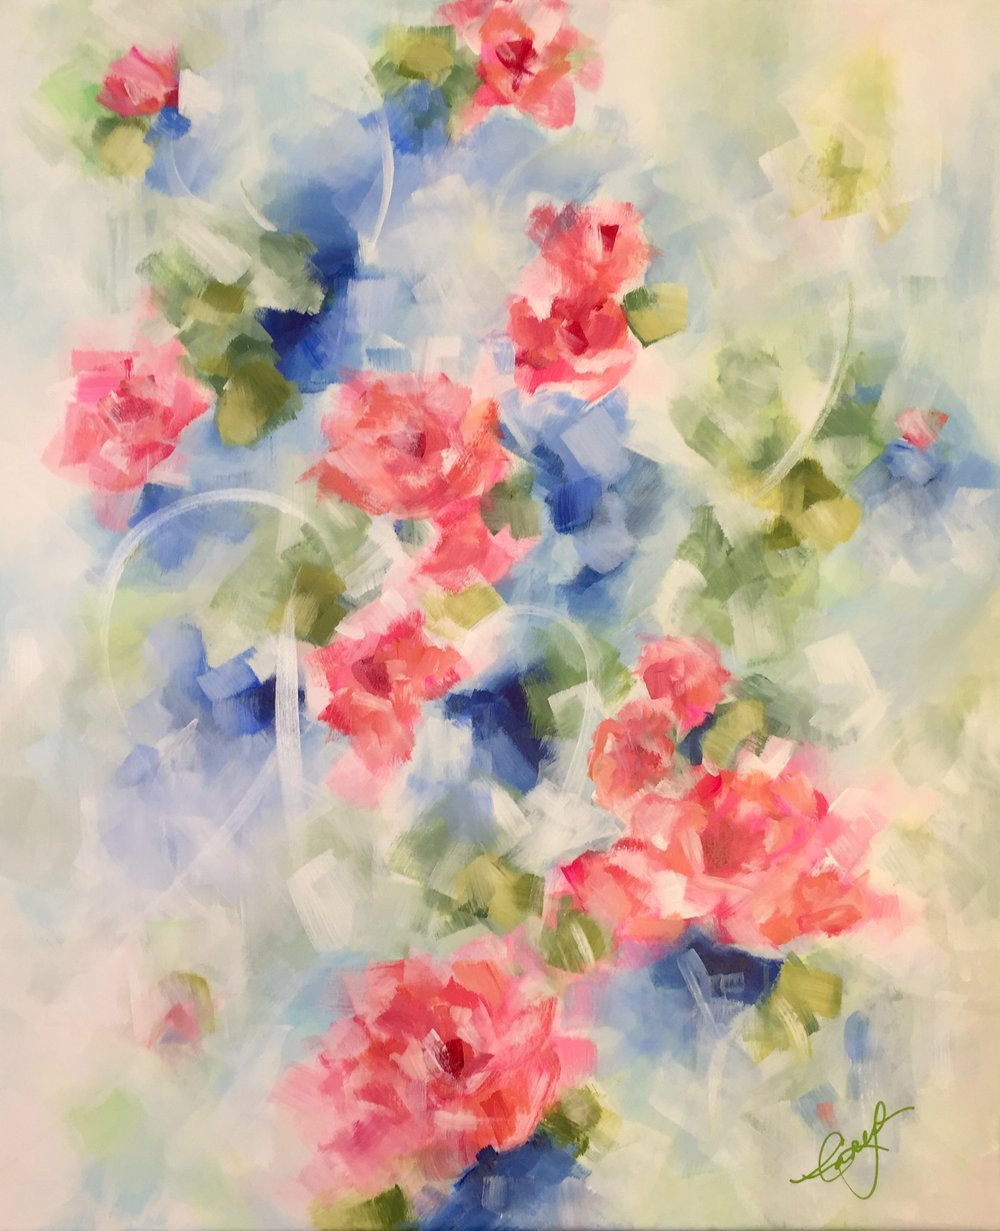 """Painting - """"She Blooms!"""""""